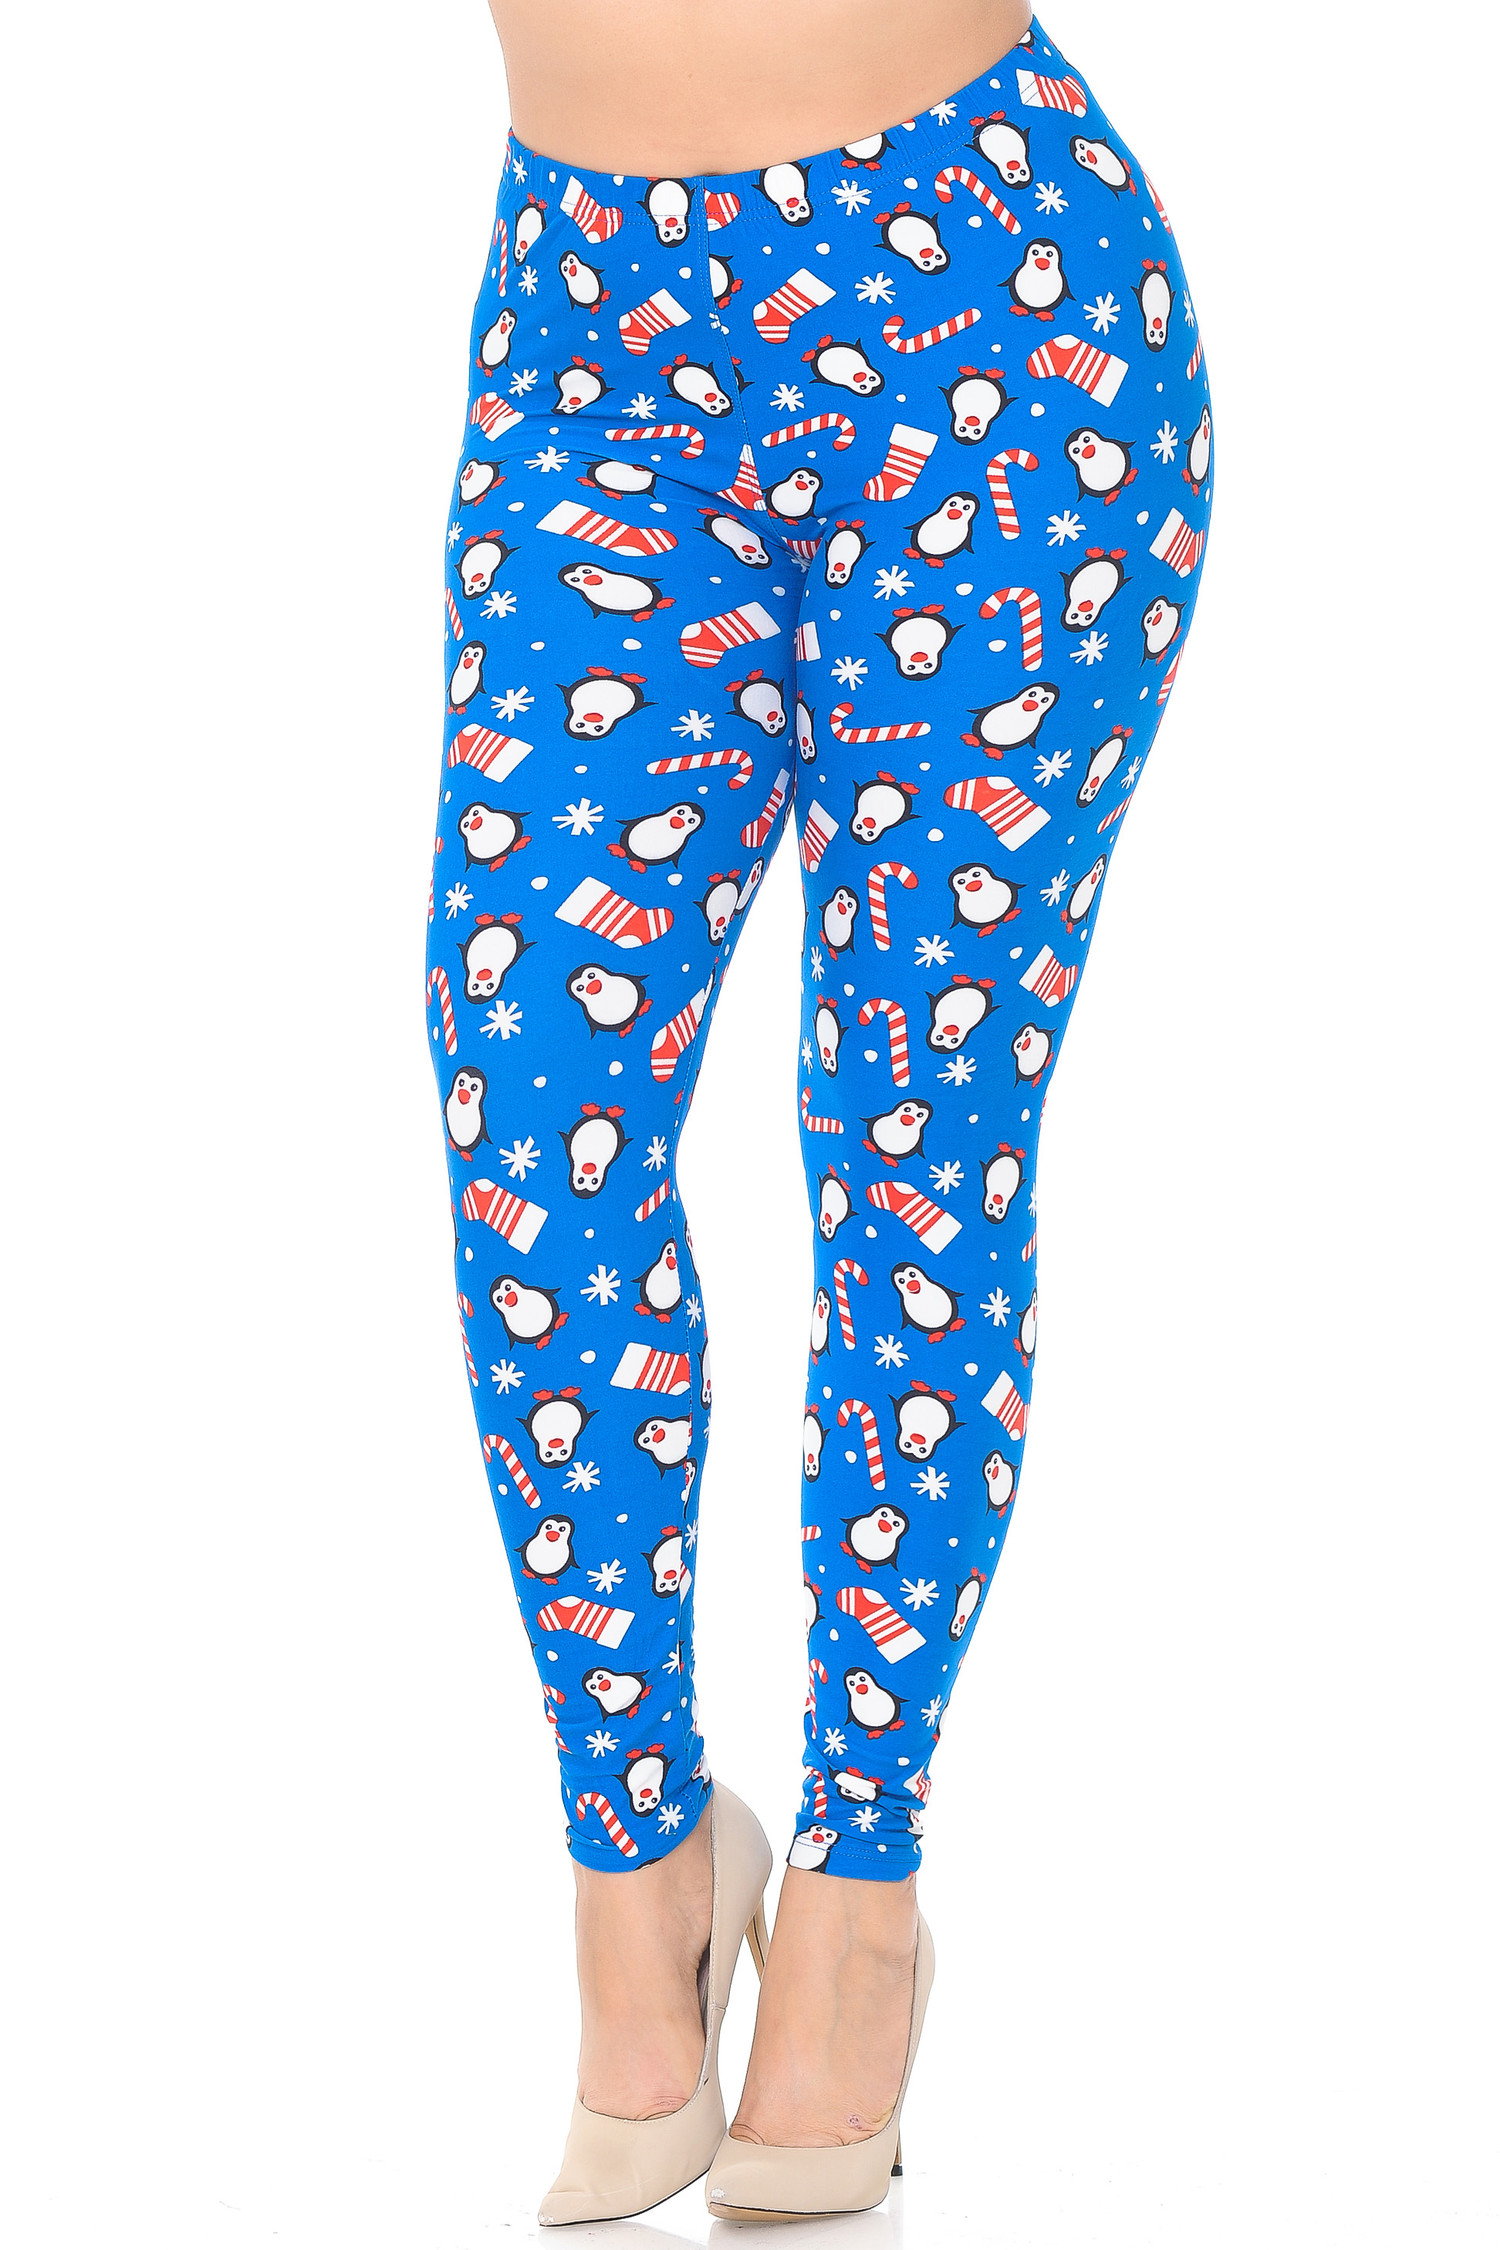 Brushed Icy Blue Christmas Penguins Extra Plus Size Leggings - 3X-5X